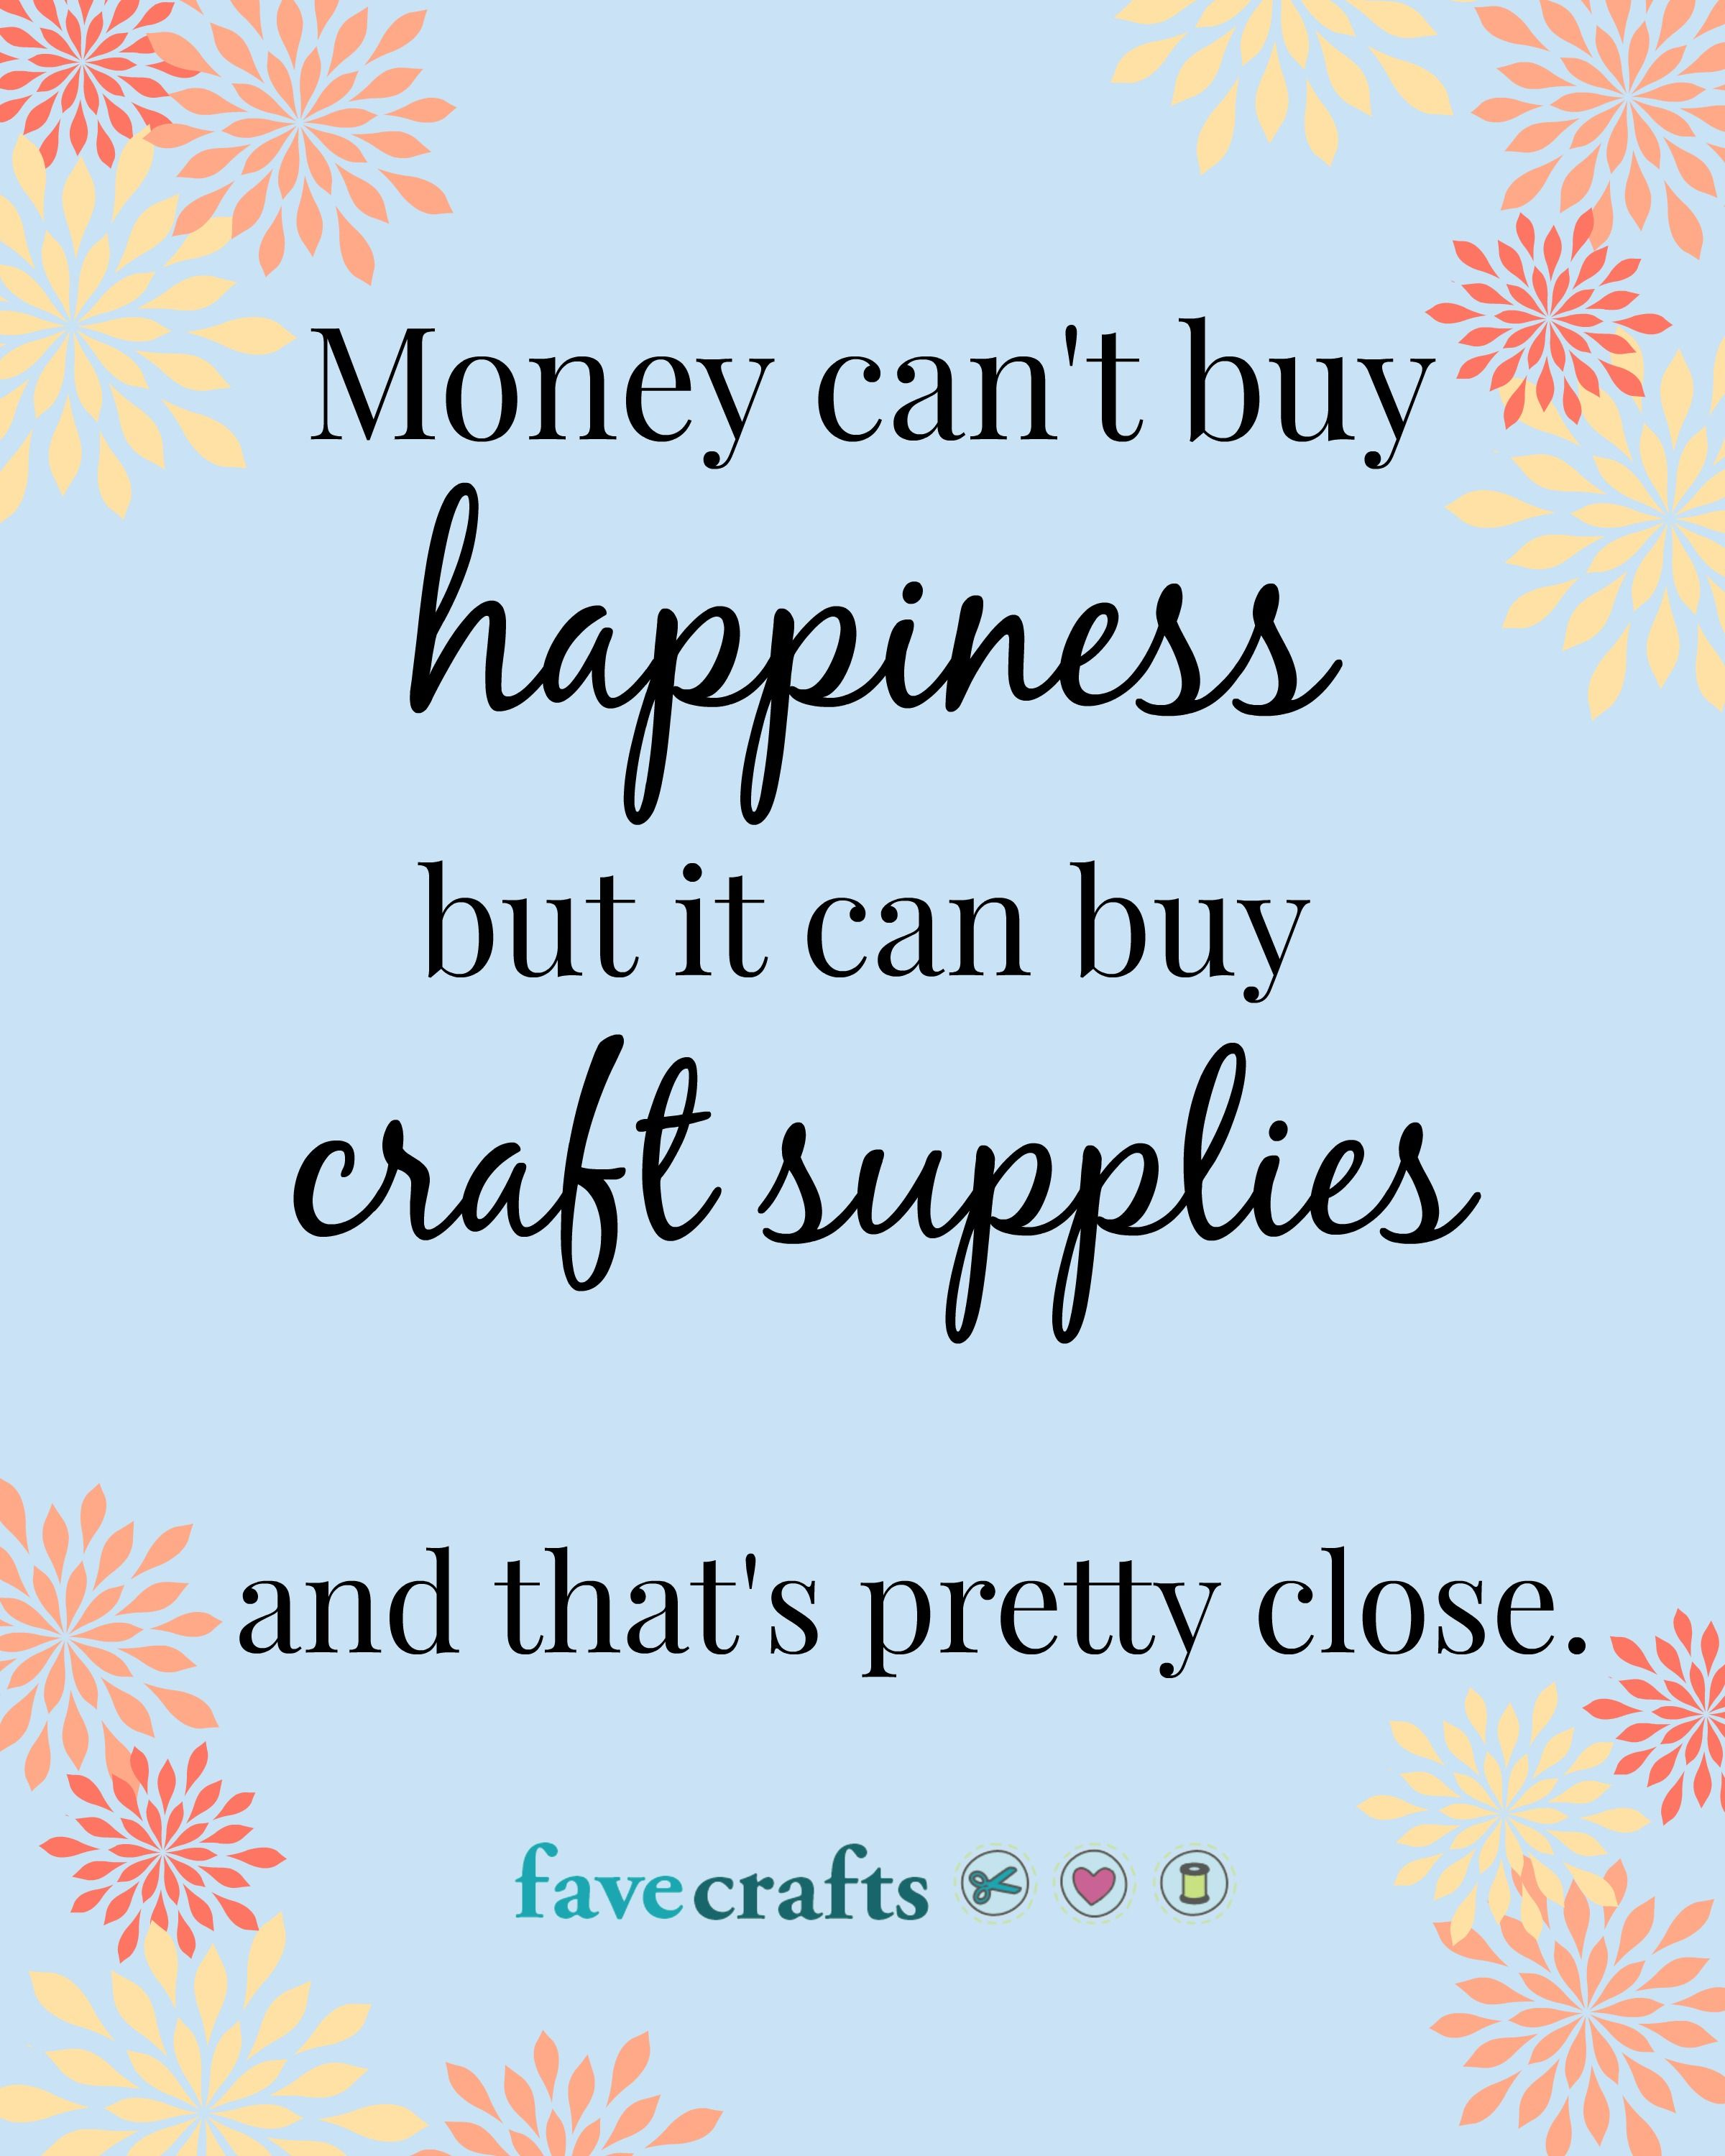 Christmas Crafts Free Knitting Patterns Free Crochet Patterns and More from Fun QuotesFunny Money